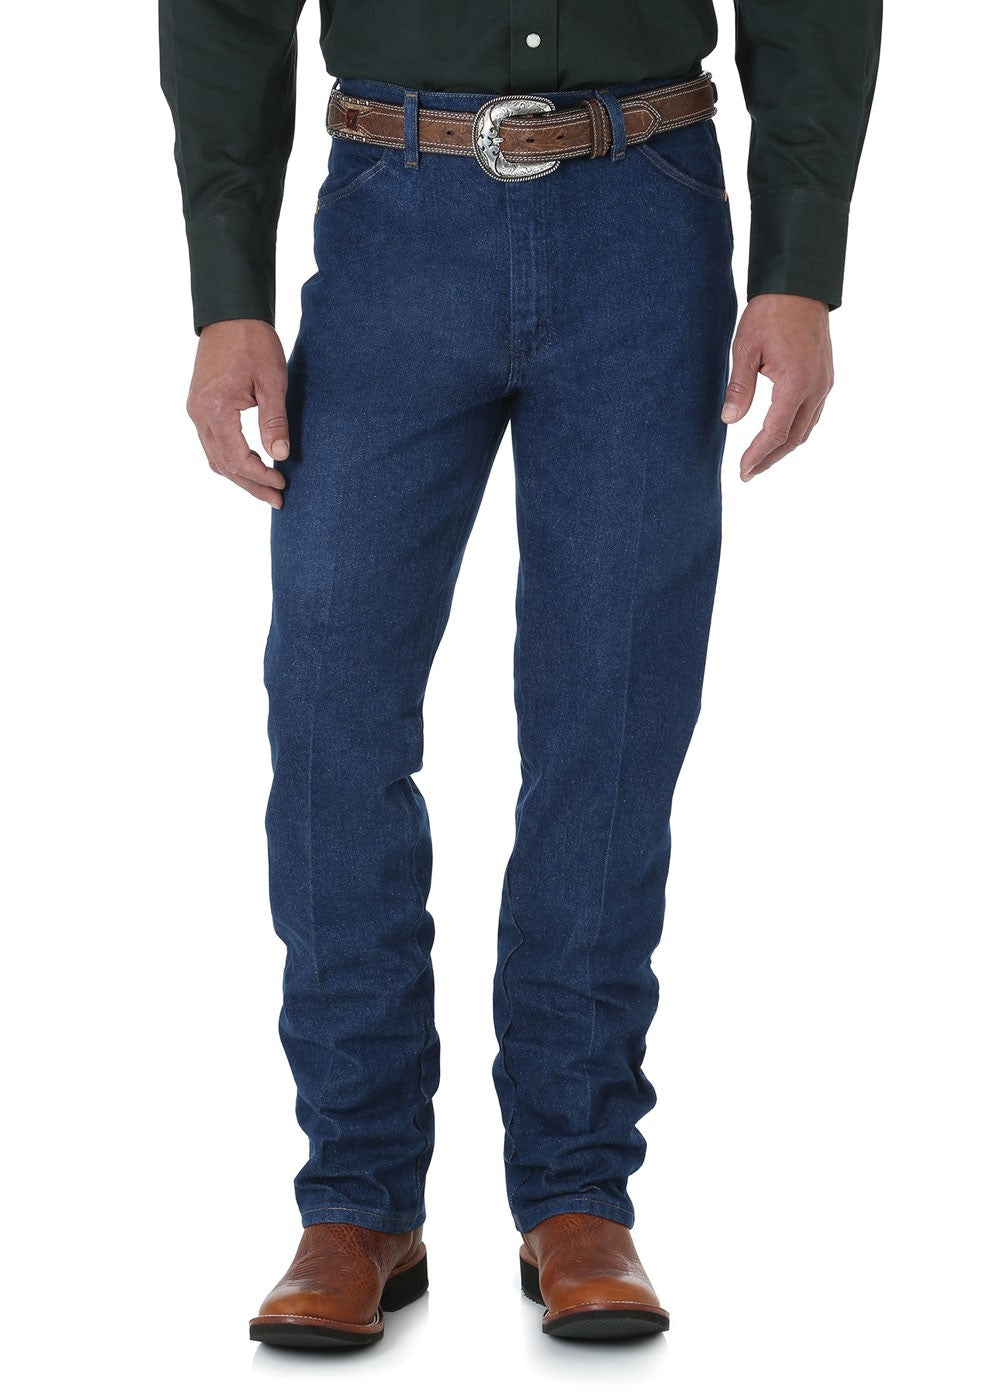 Mens Cowboy Cut Slim Fit Jean_Prewashed Indigo